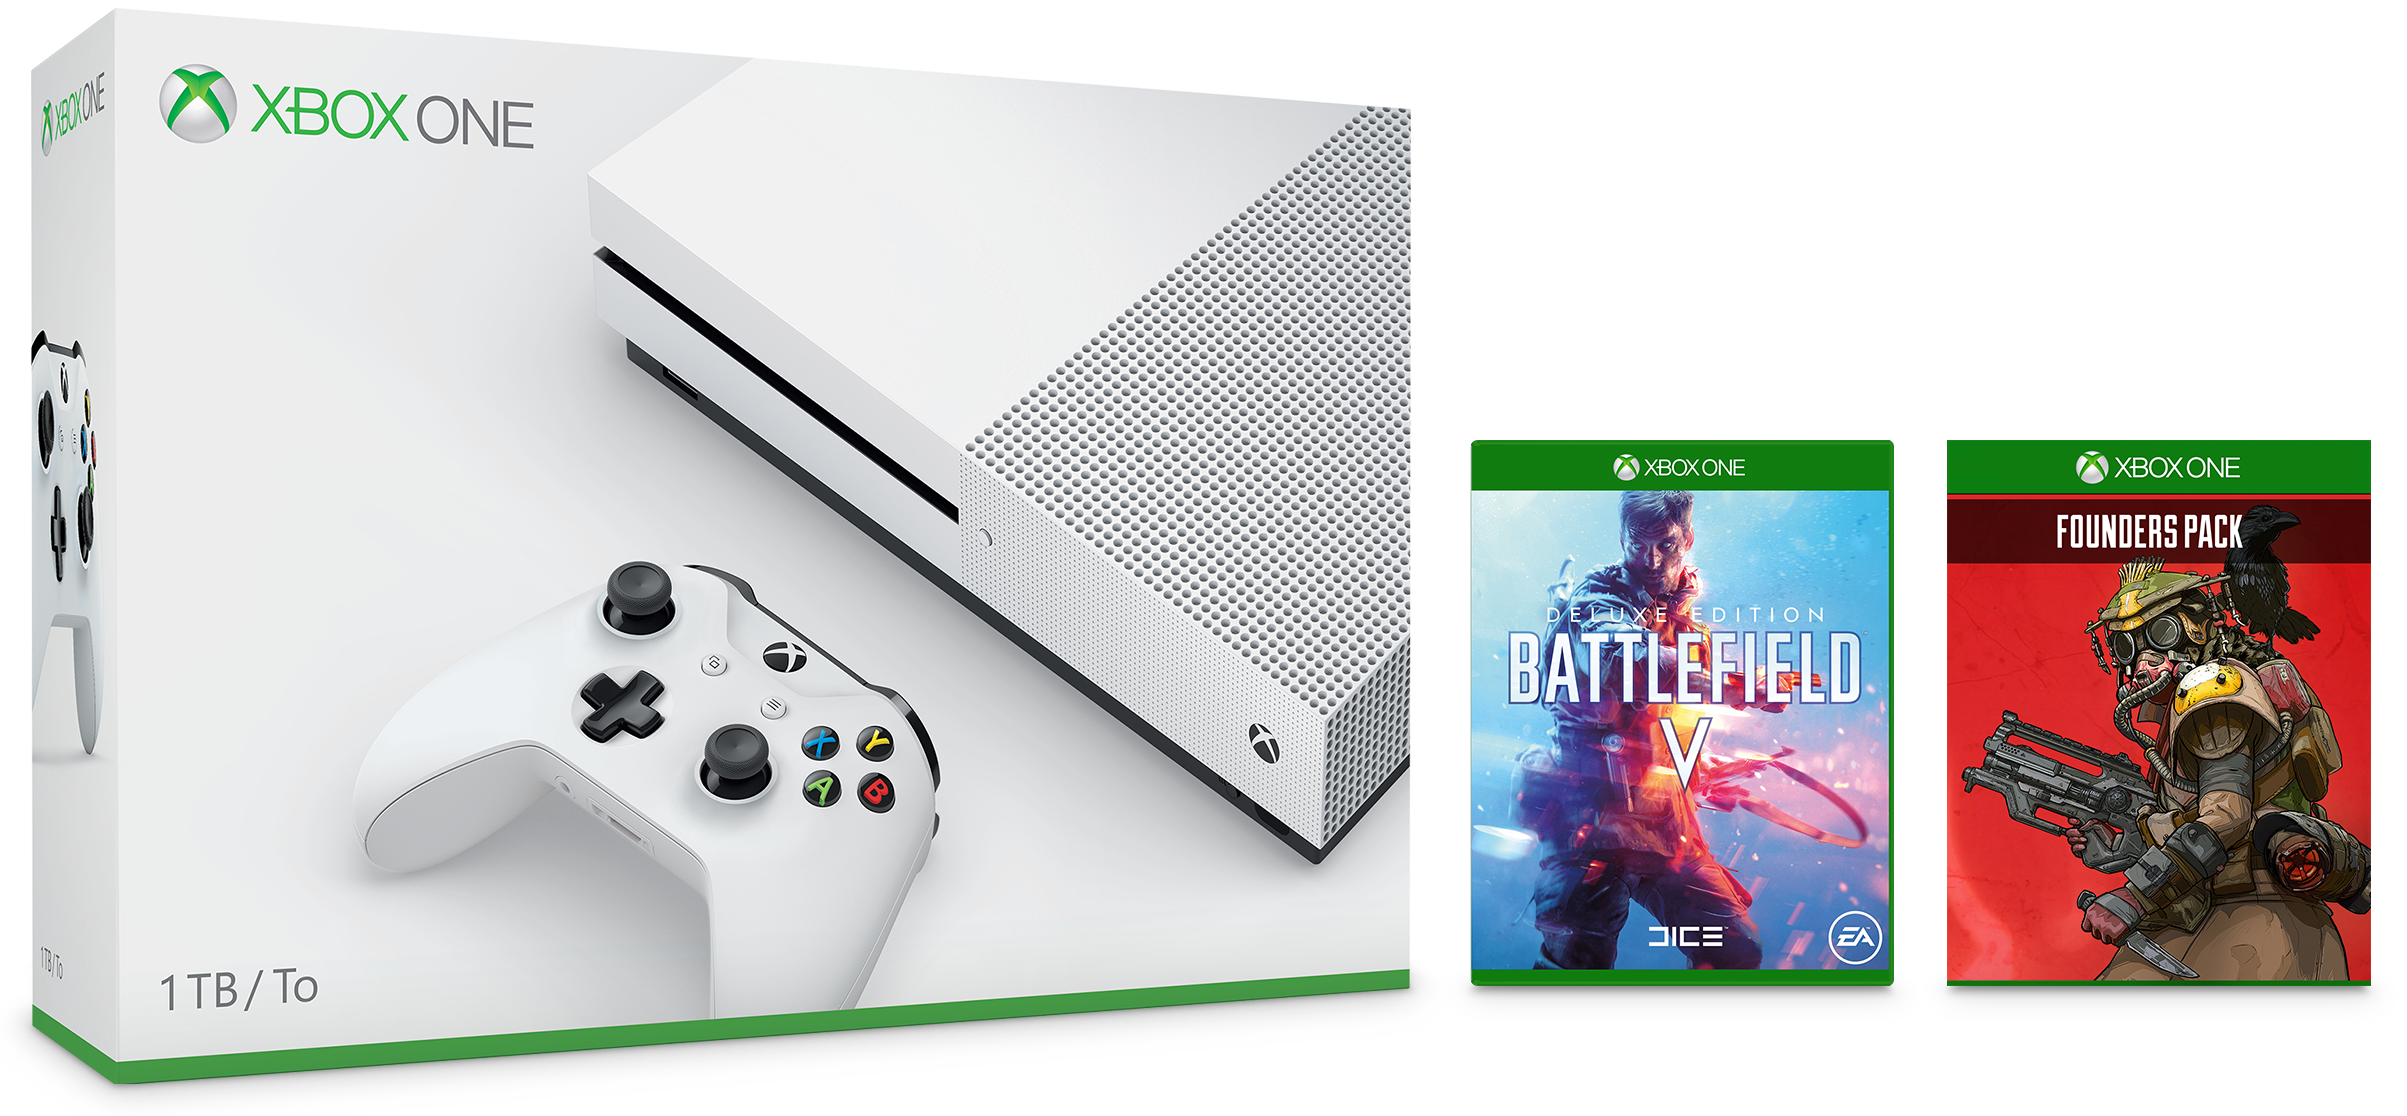 Xbox One S 1TB Console – Battlefield V Bundle and Apex Legends Founder's Pack